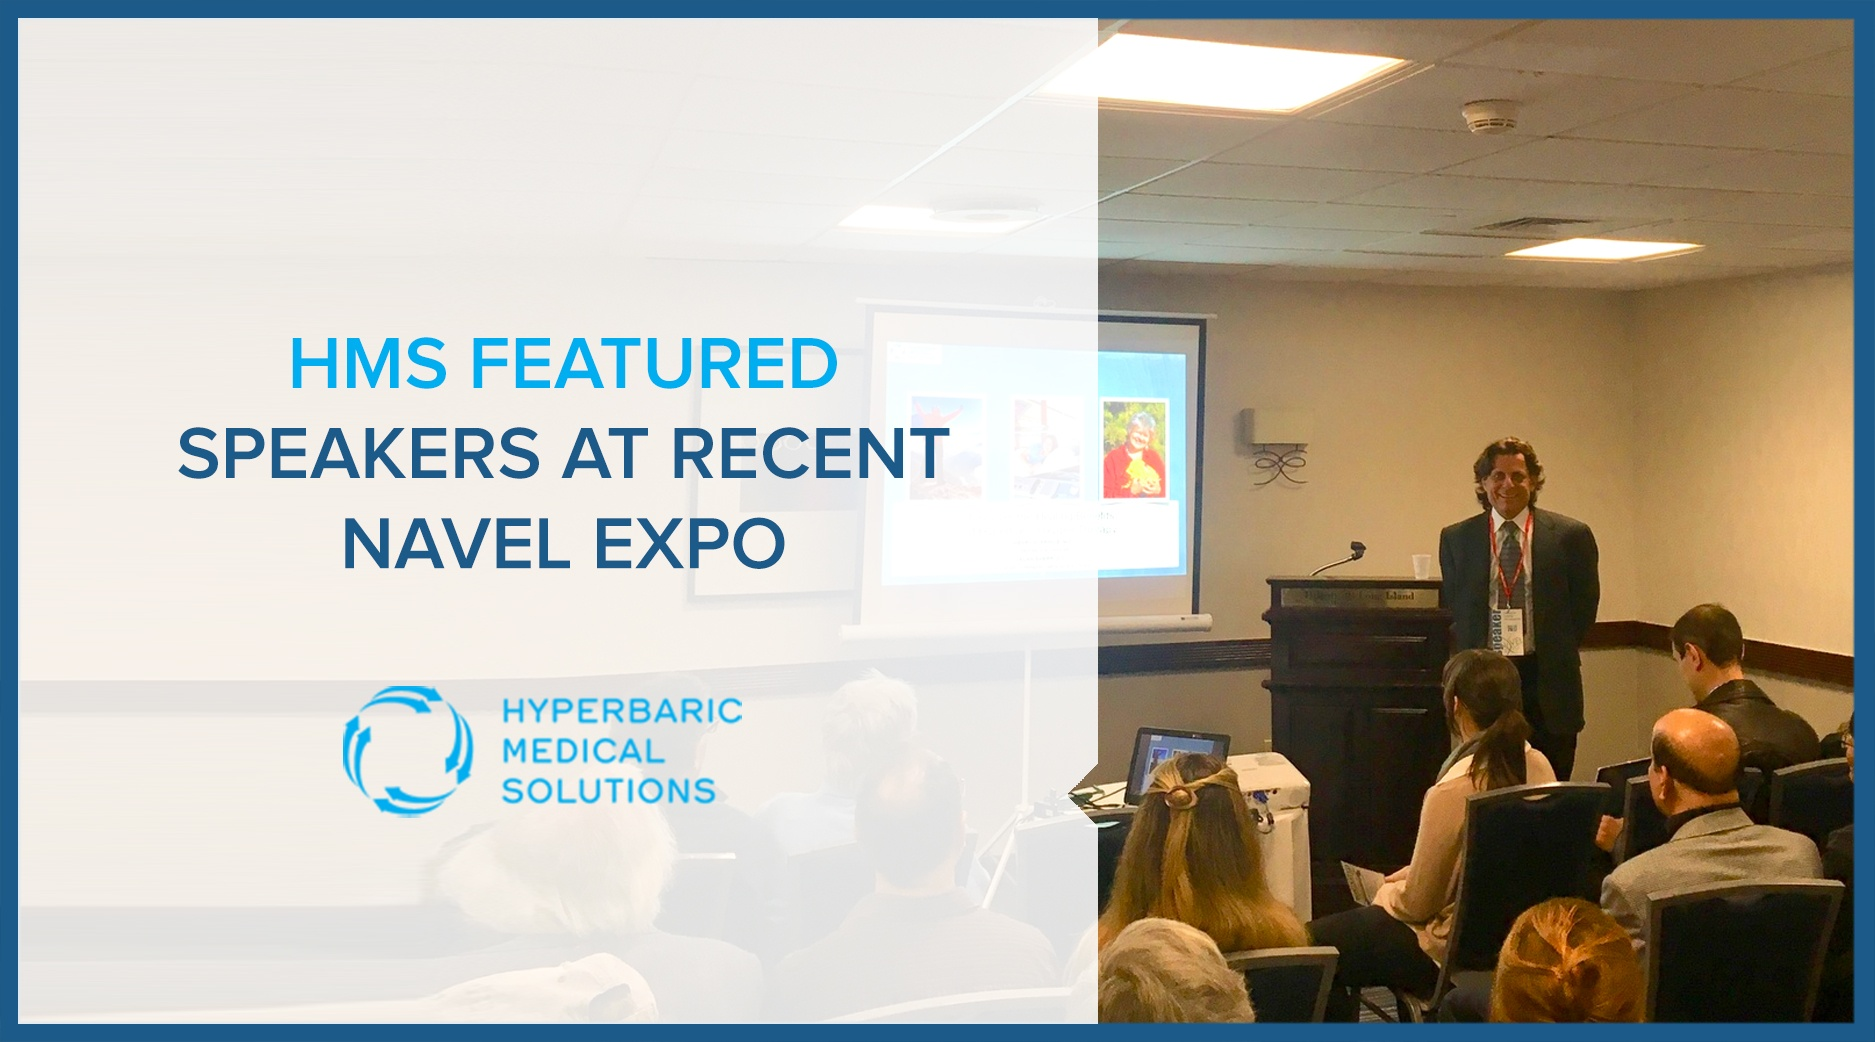 HMS FEATURED SPEAKERS AT RECENT NAVEL EXPO